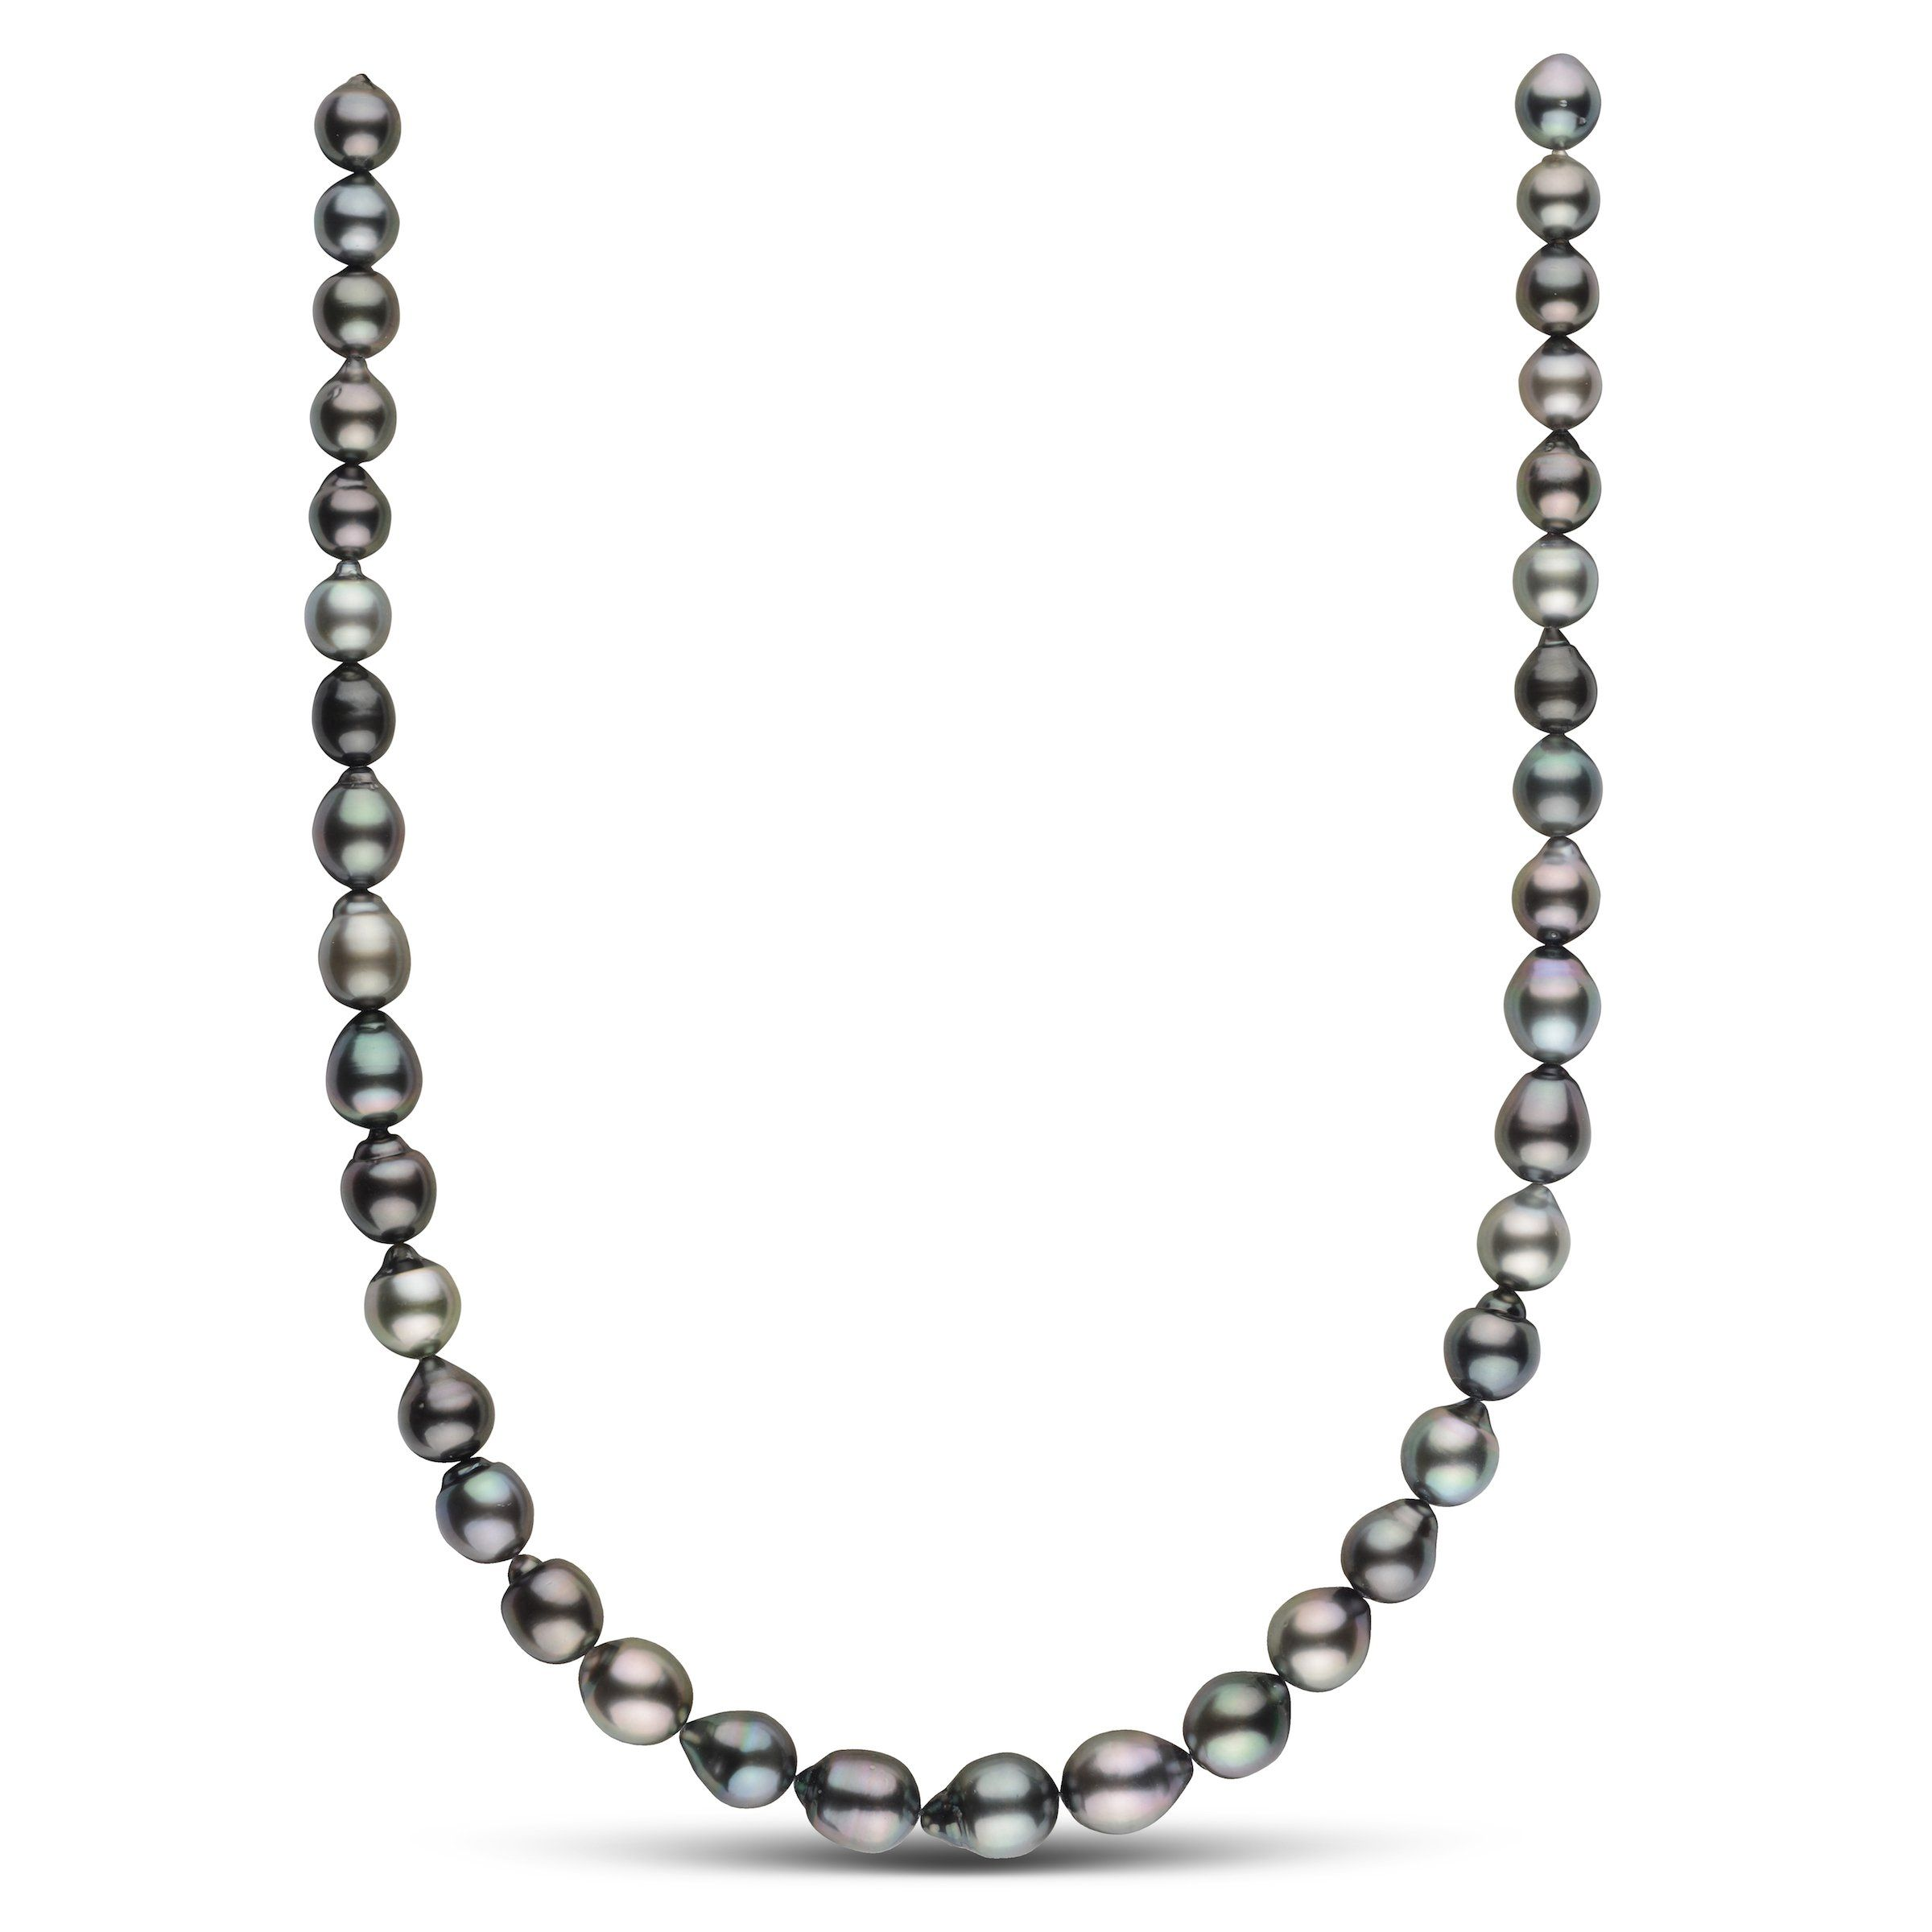 8.5-10.6 mm AAA Tahitian Drop Pearl Necklace